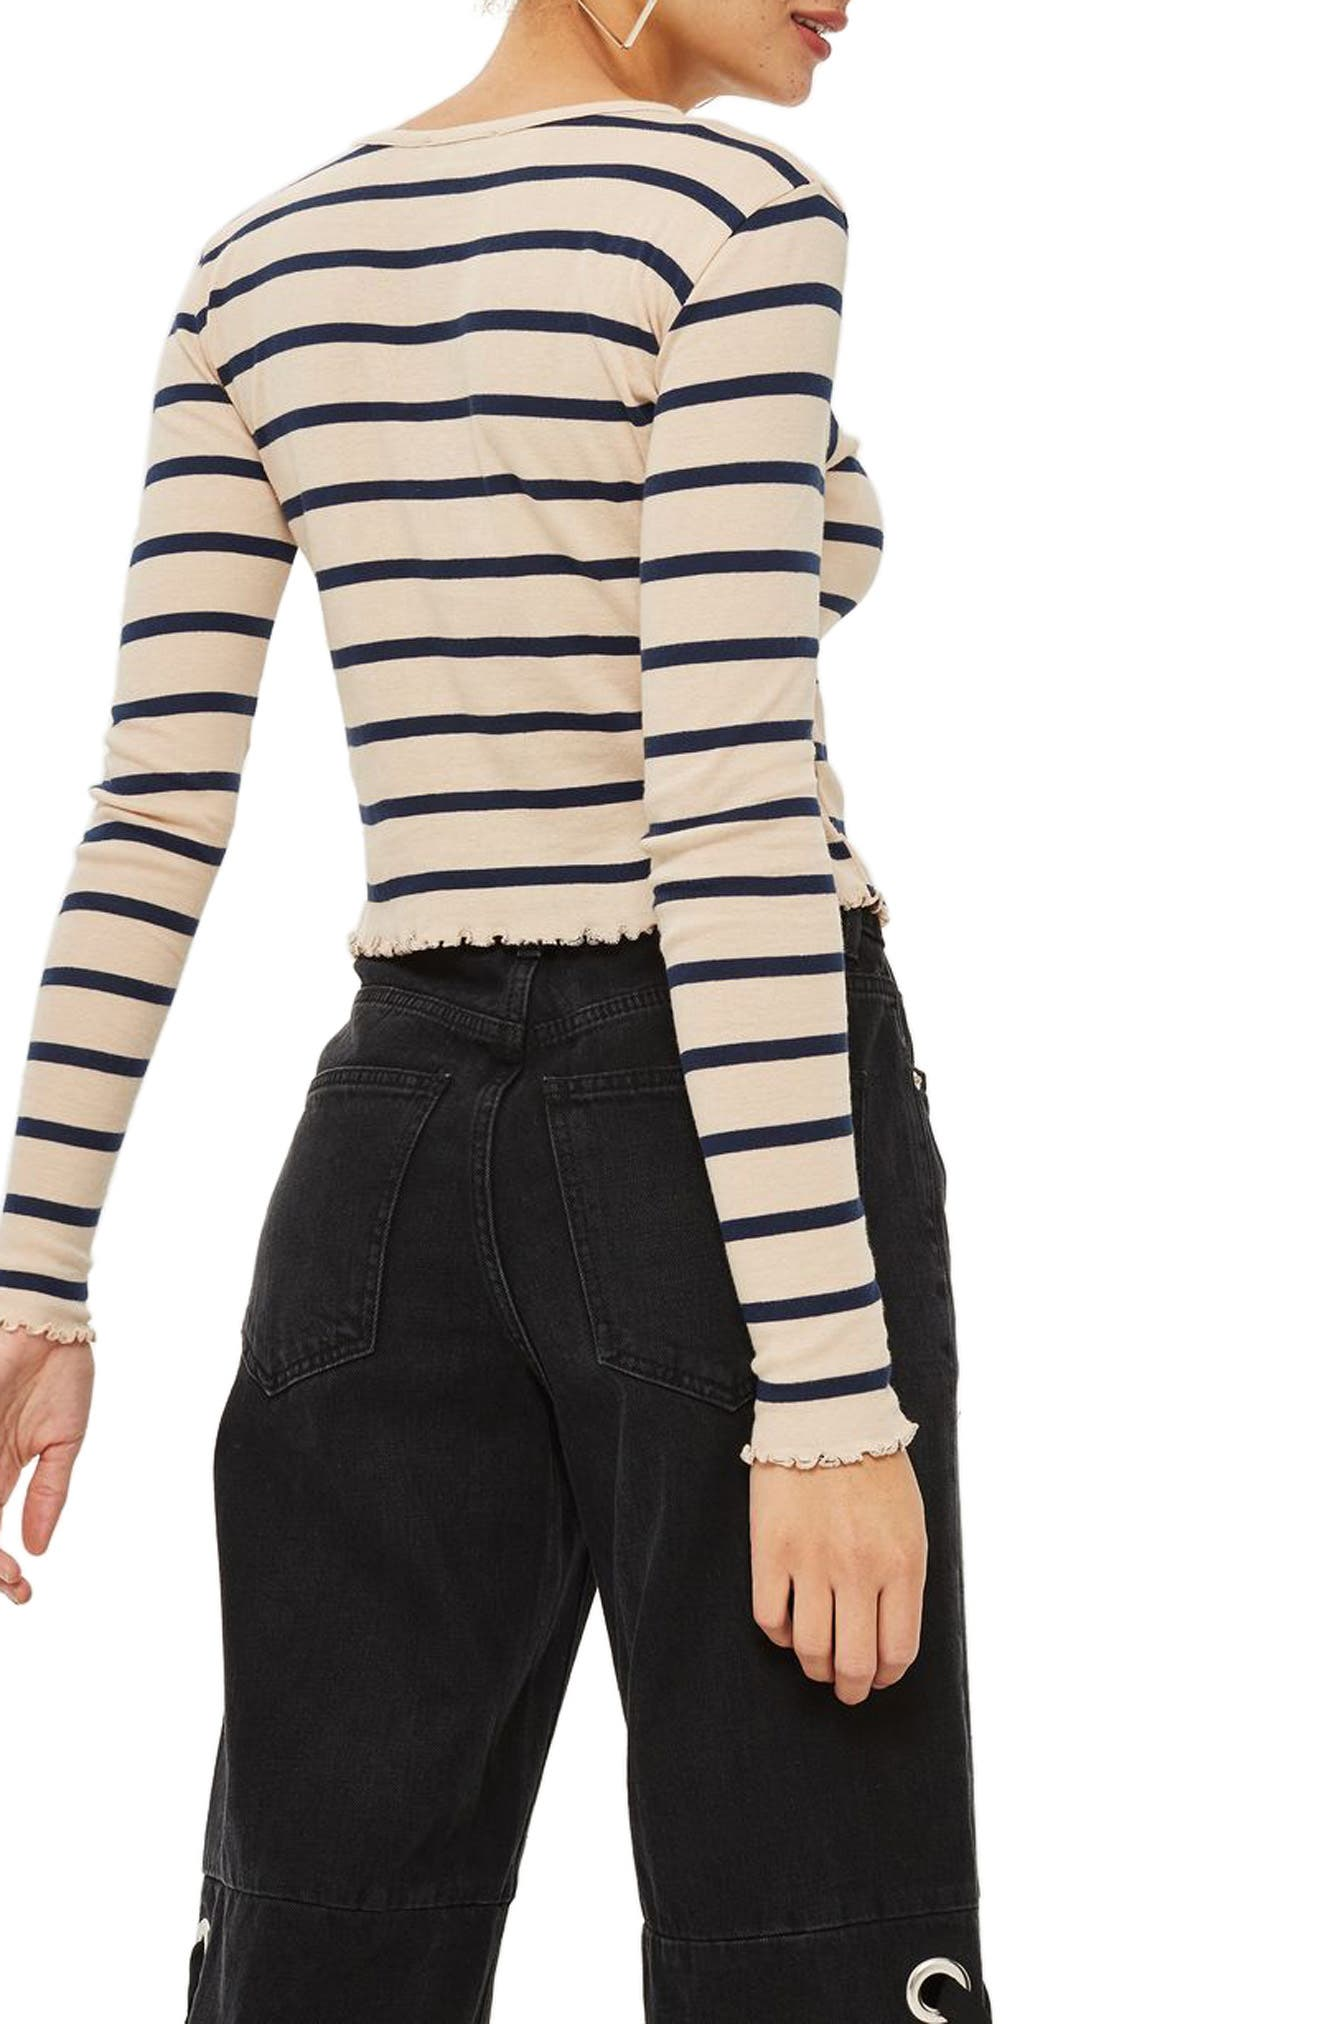 Alternate Image 3  - Topshop Stripe Lettuce Hem Crop Top (Regular & Petite)